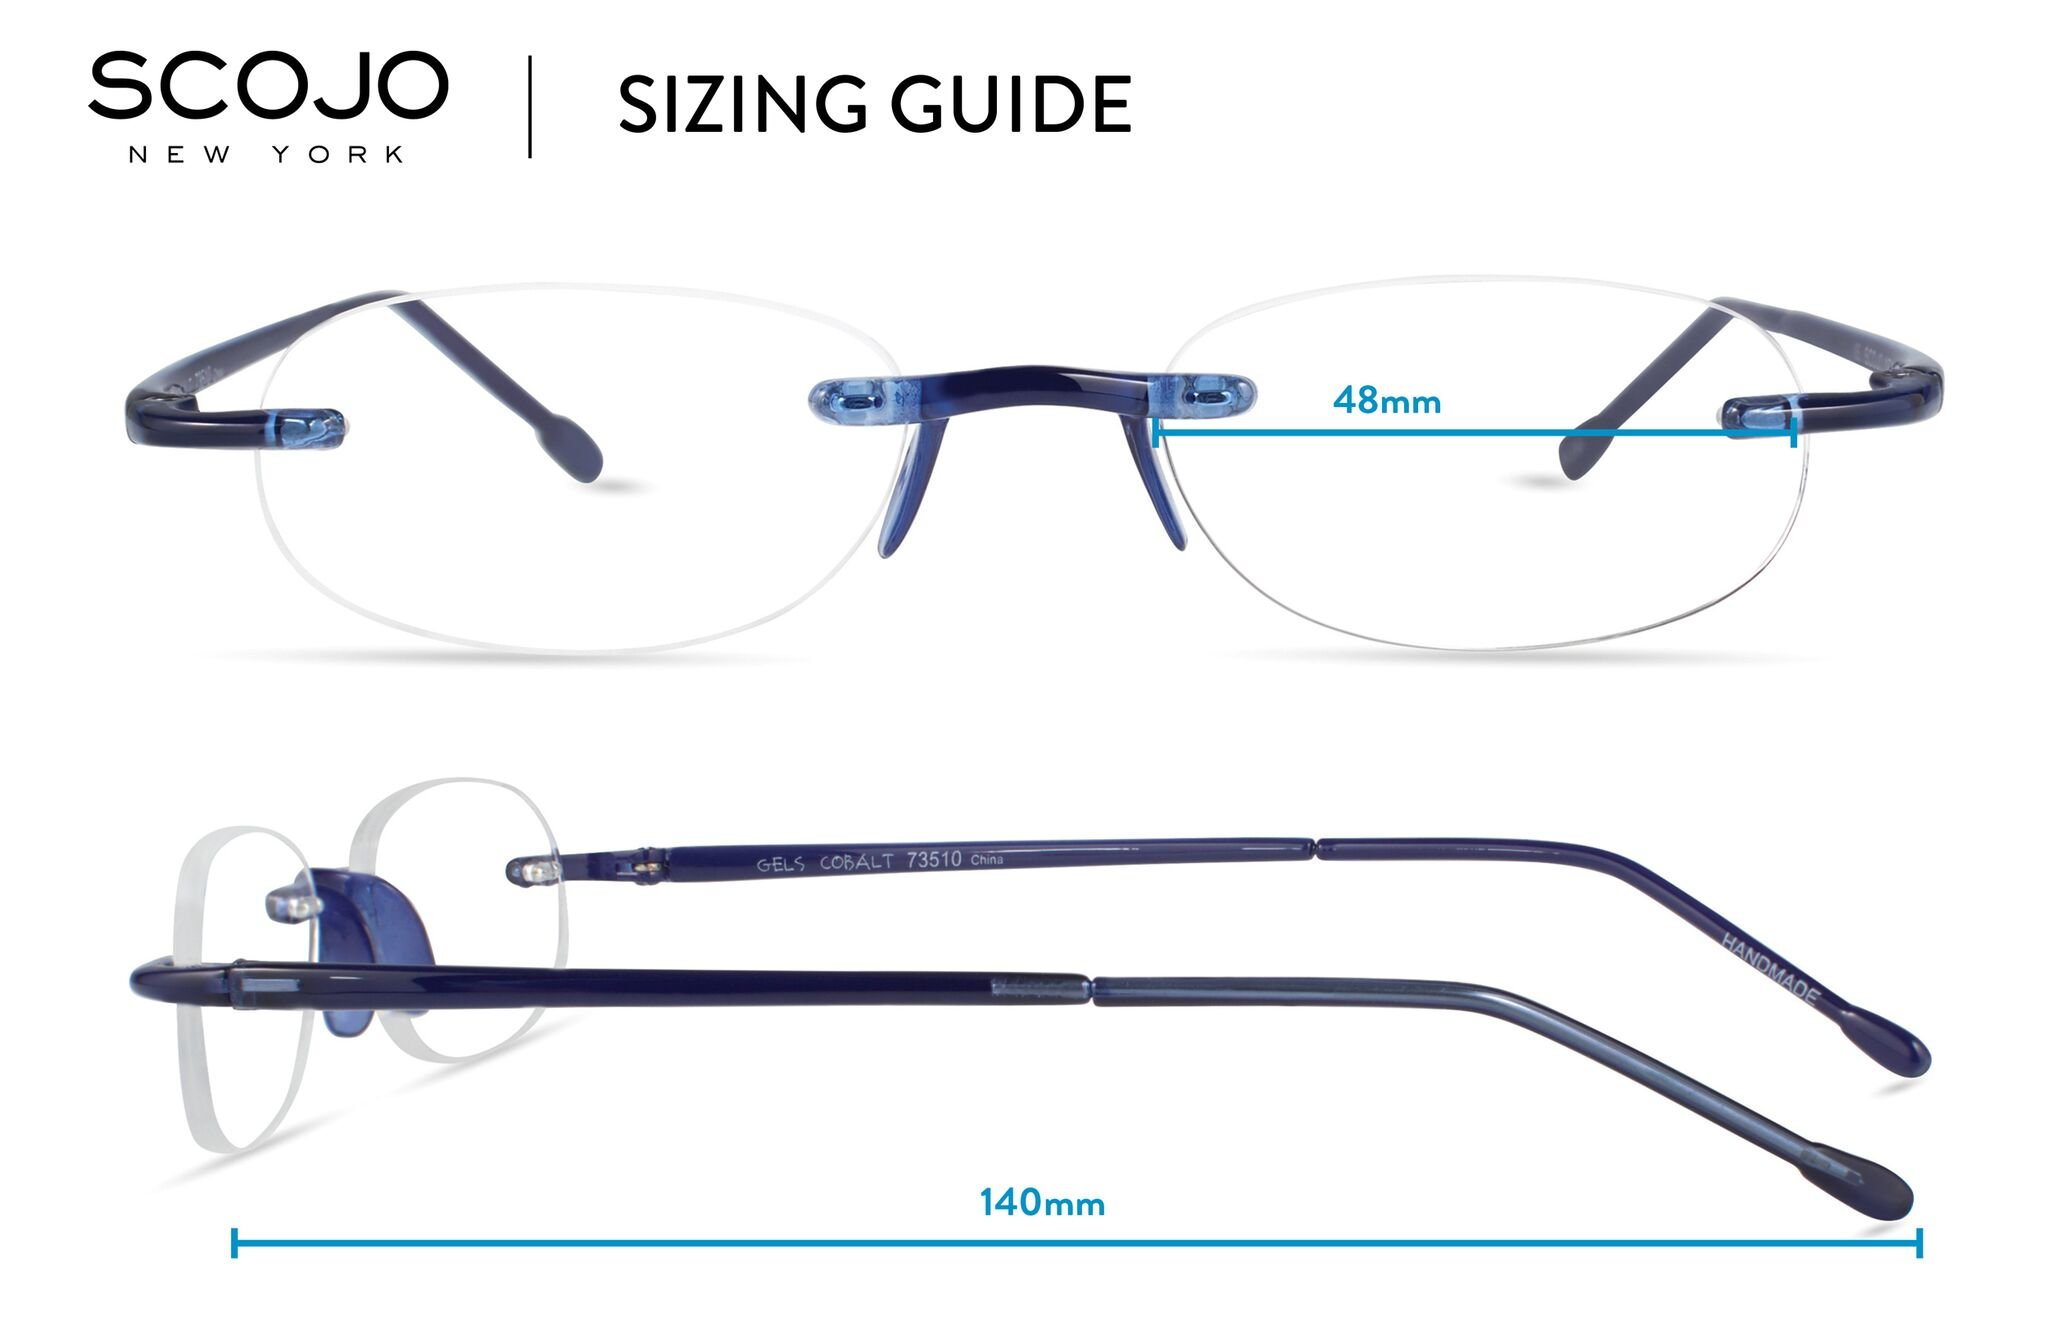 Gels - Lightweight Rimless Fashion Readers - The Original Reading Glasses for Men and Women - Cobalt Blue (+2.50 Magnification Power) by Scojo New York (Image #5)